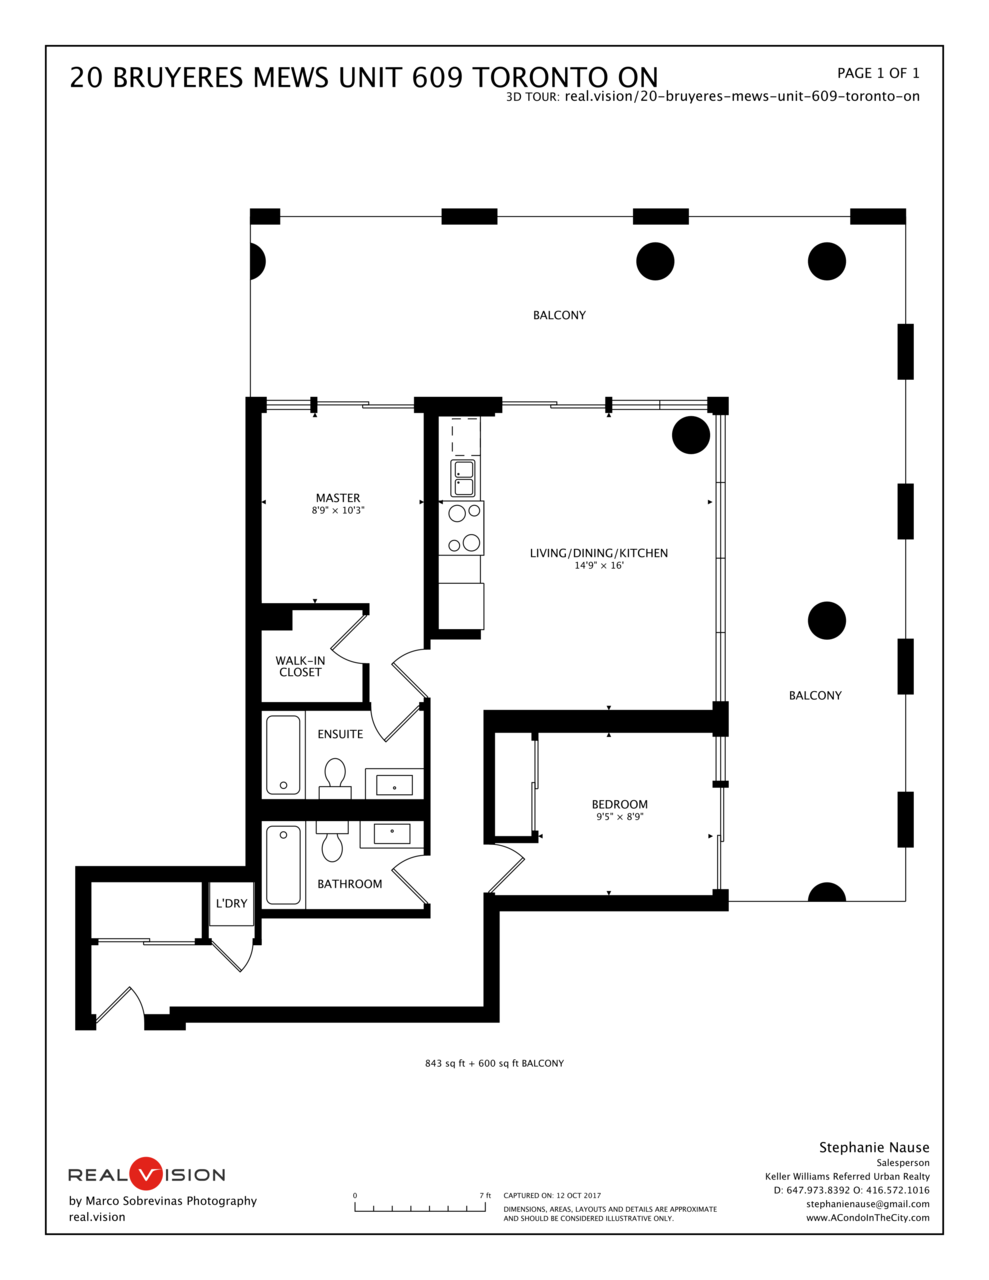 branded_imperial_20-bruyeres-mews-unit-609-toronto-on_1.png